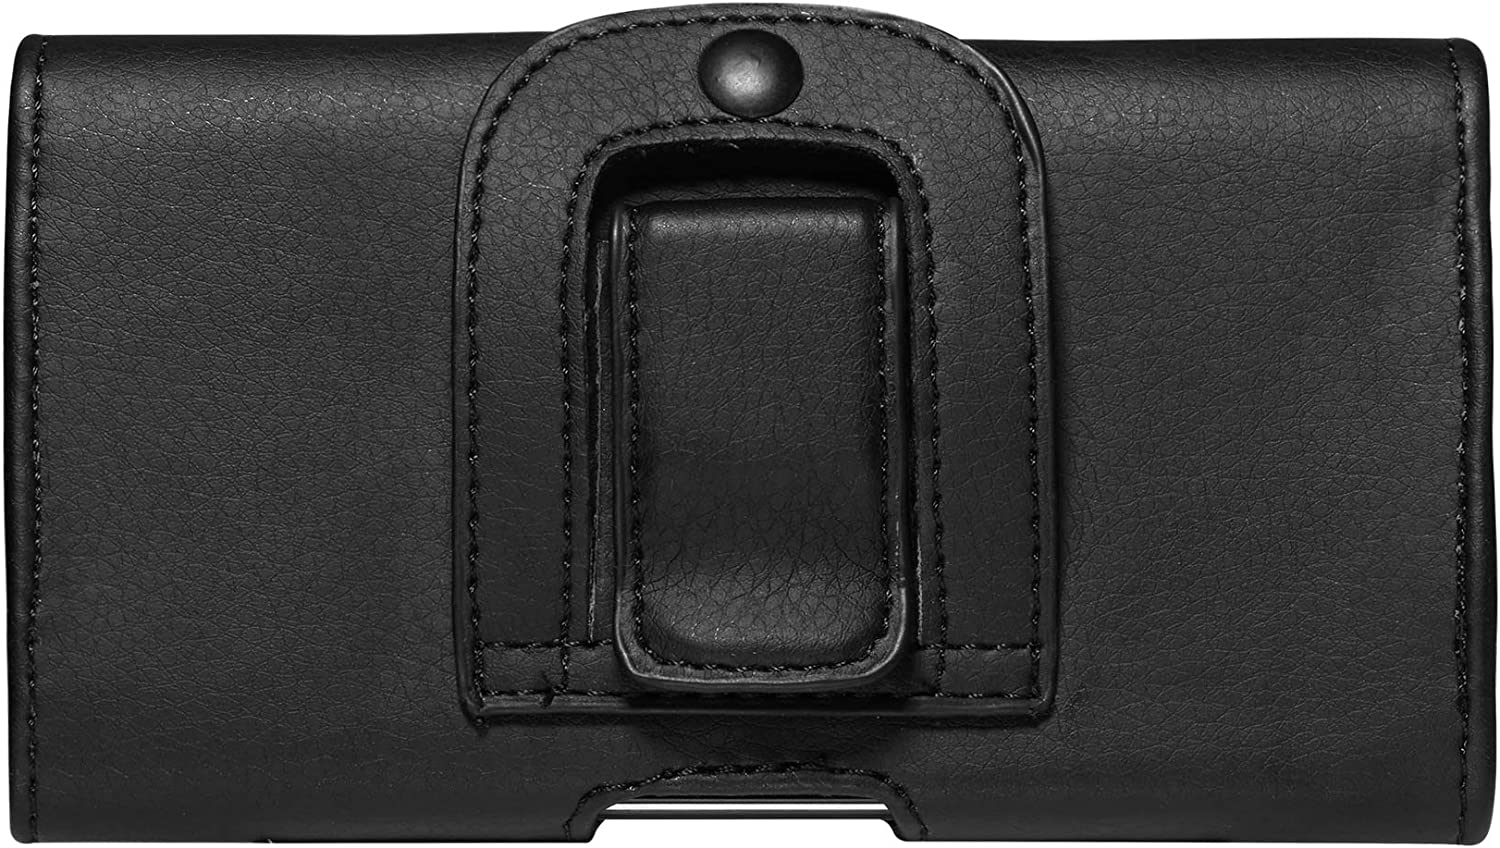 Cell Phone Holster Case Holder Pouch with Belt Clip Loops for Samsung S20 Ultra 5G, Z Flip, Note 20 Ultra 5G, S20+ 5G, A20S A70 A71, S10 Lite, S10 5G, LG V60 ThinQ(Naked) K51S K51 K50, Moto Edge +